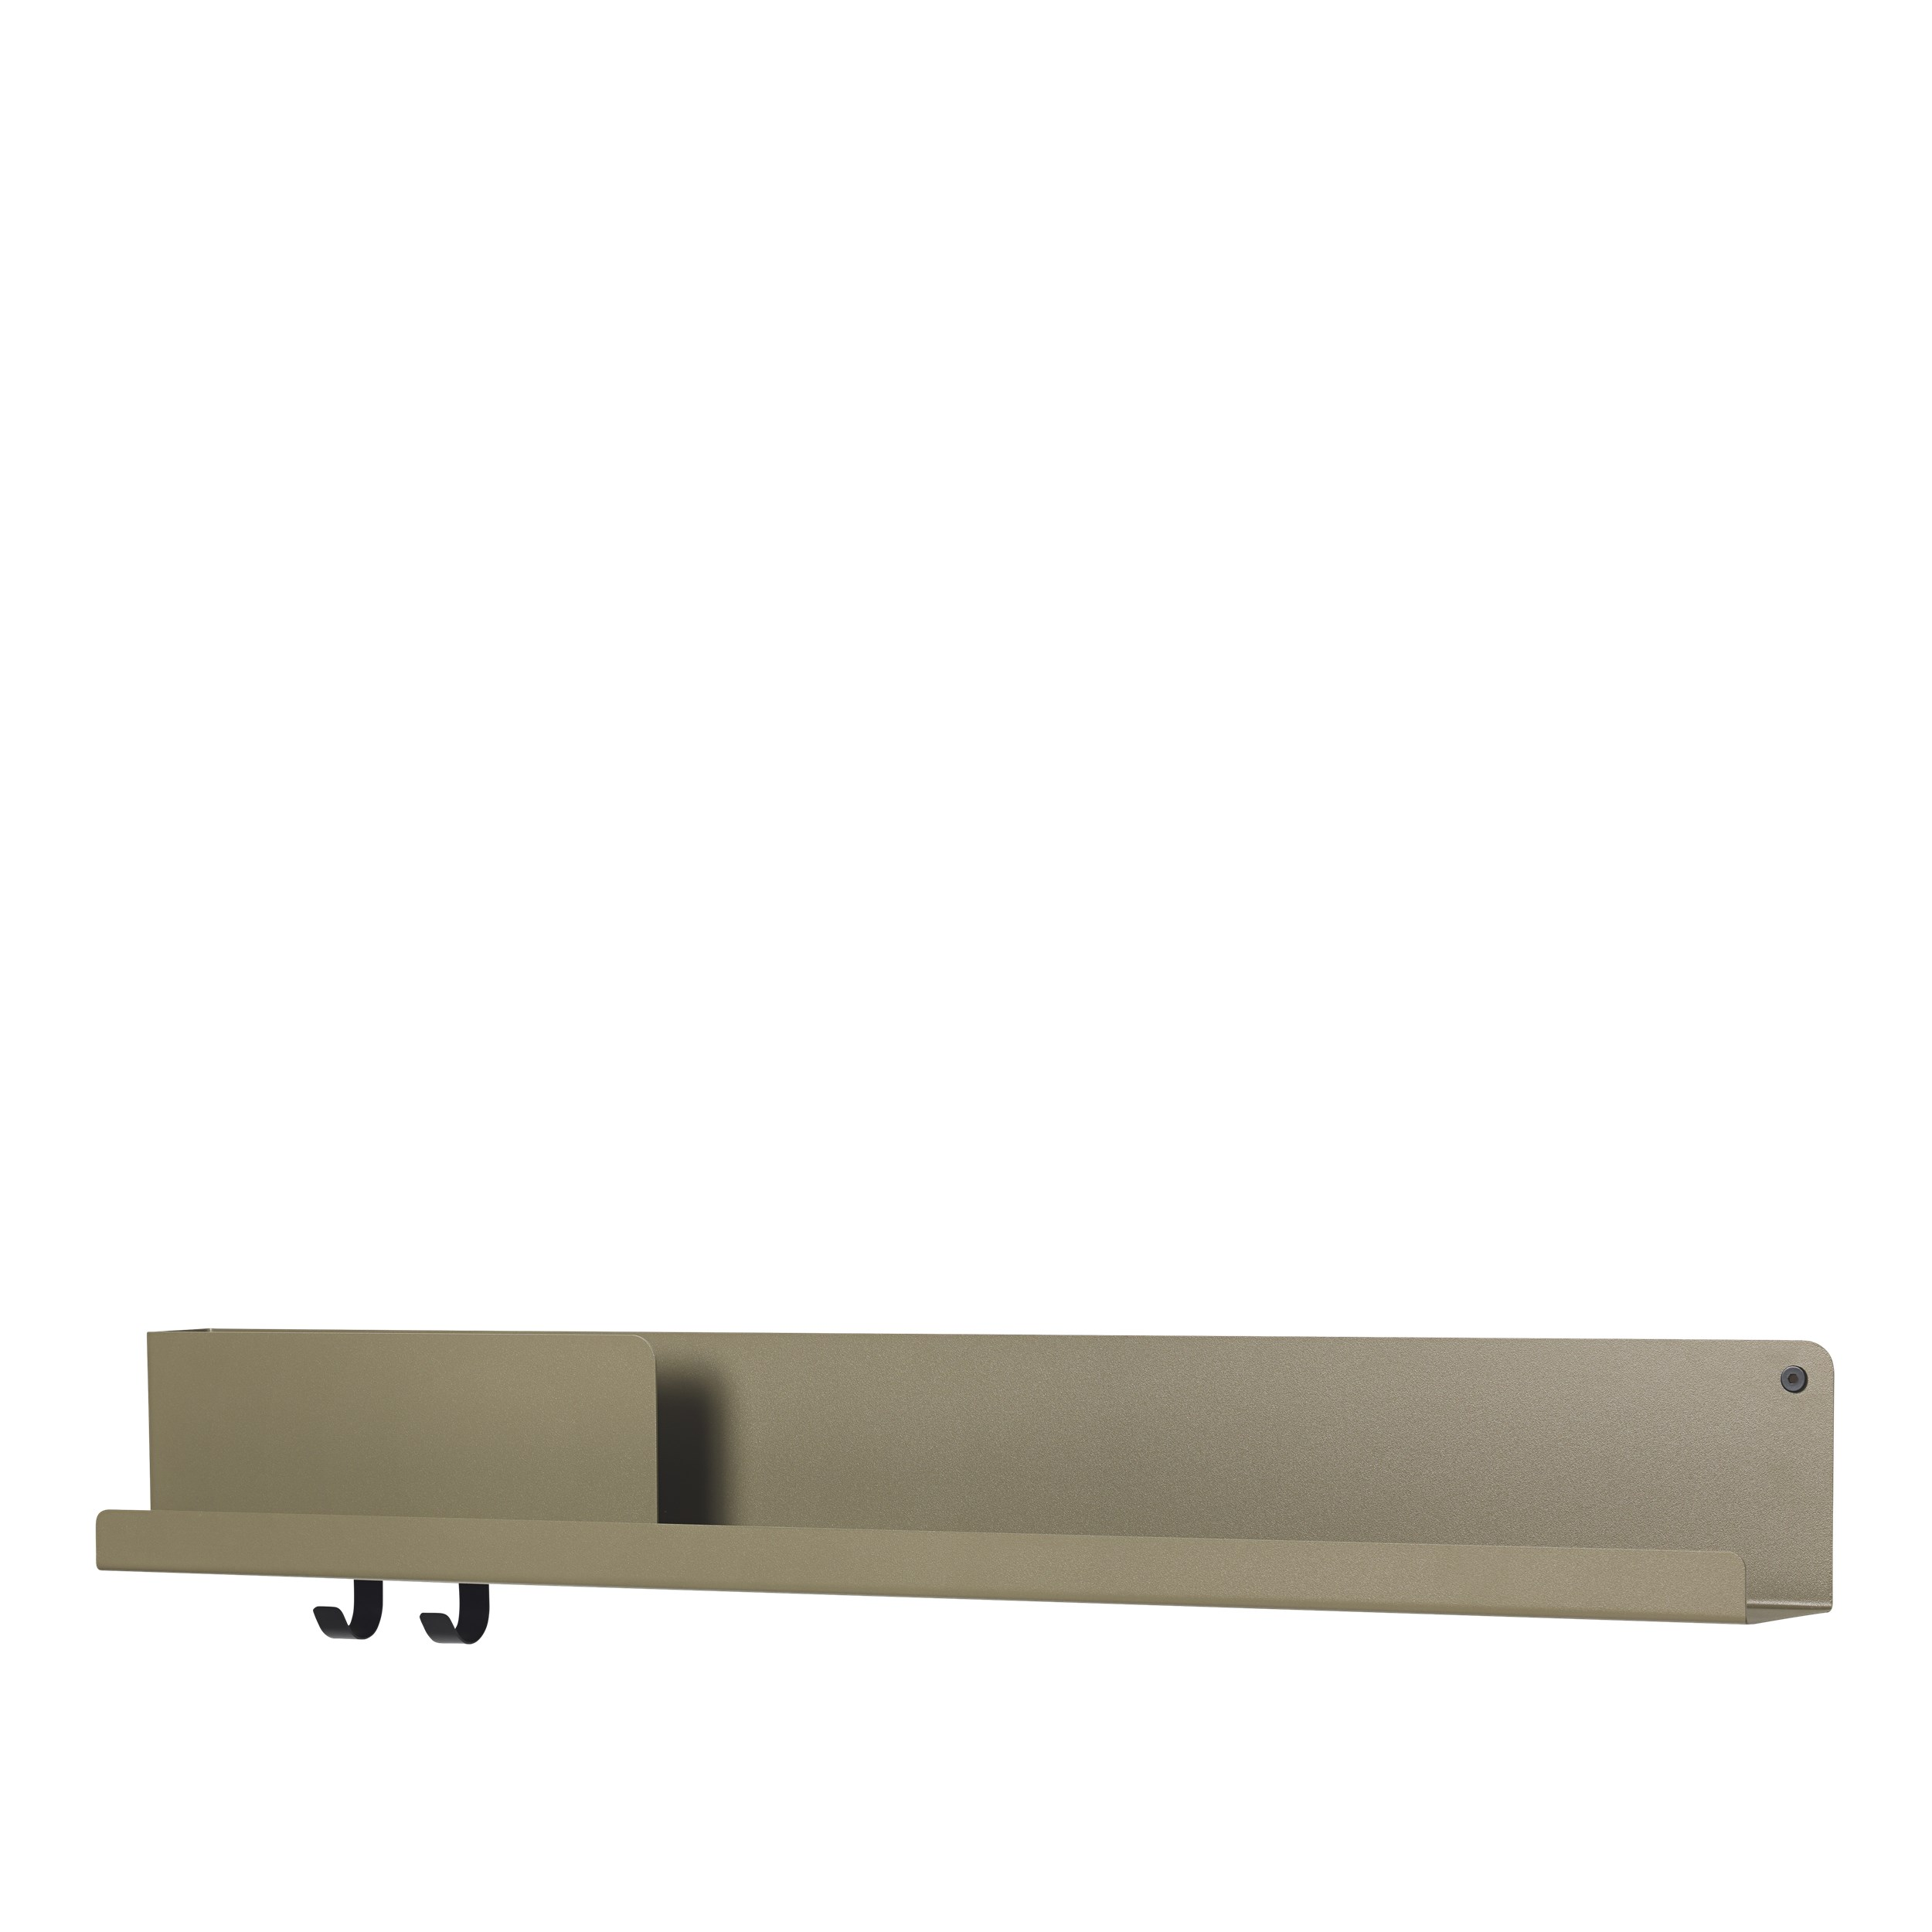 Muuto Folded Shelf Large olive 96cm